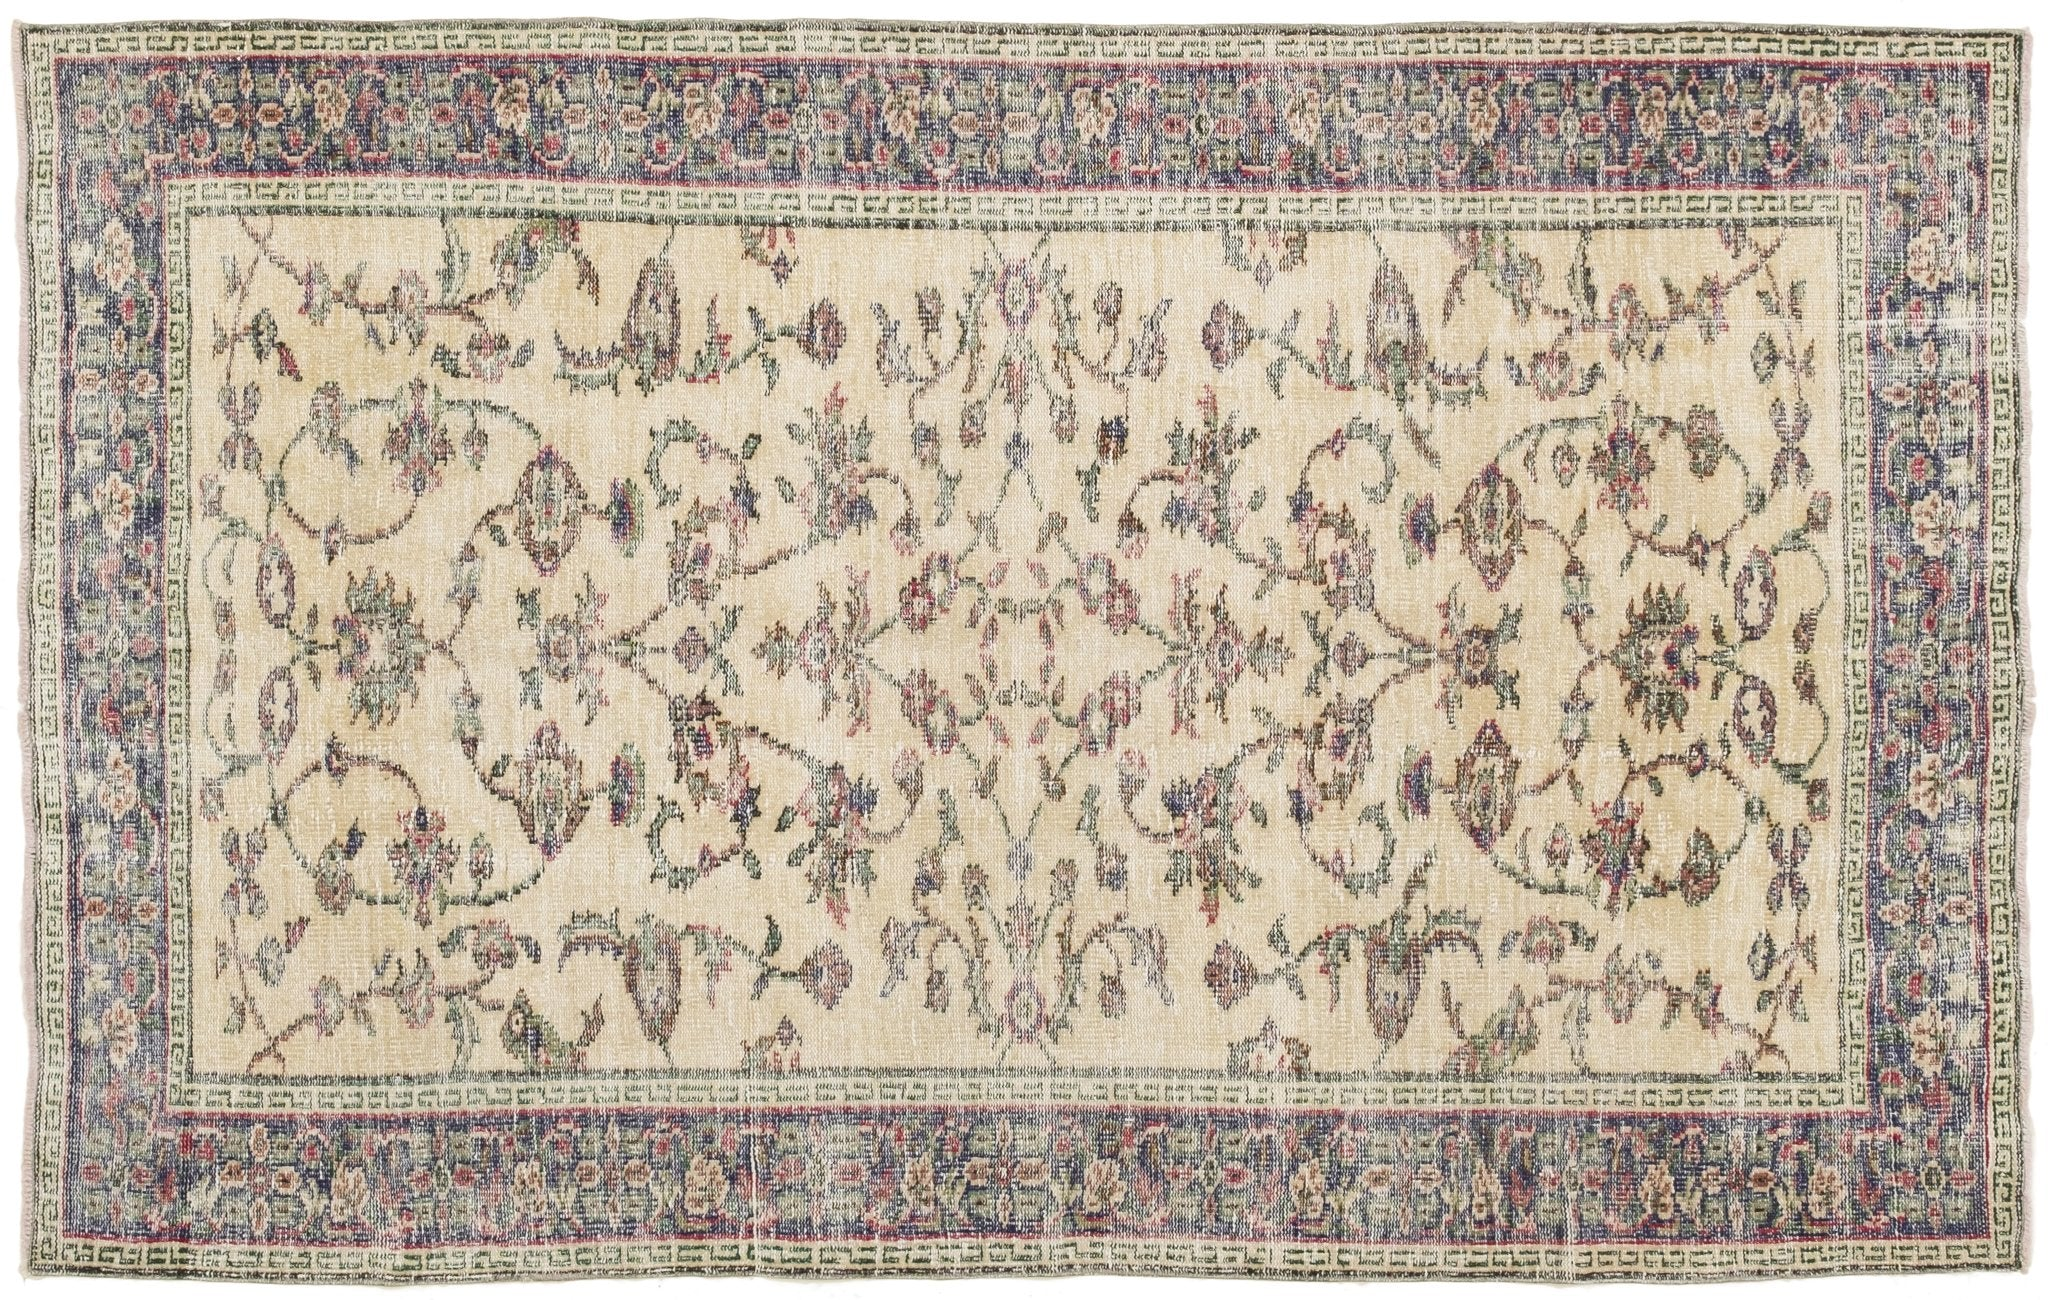 Vintage Persian Style Rug Marcellin